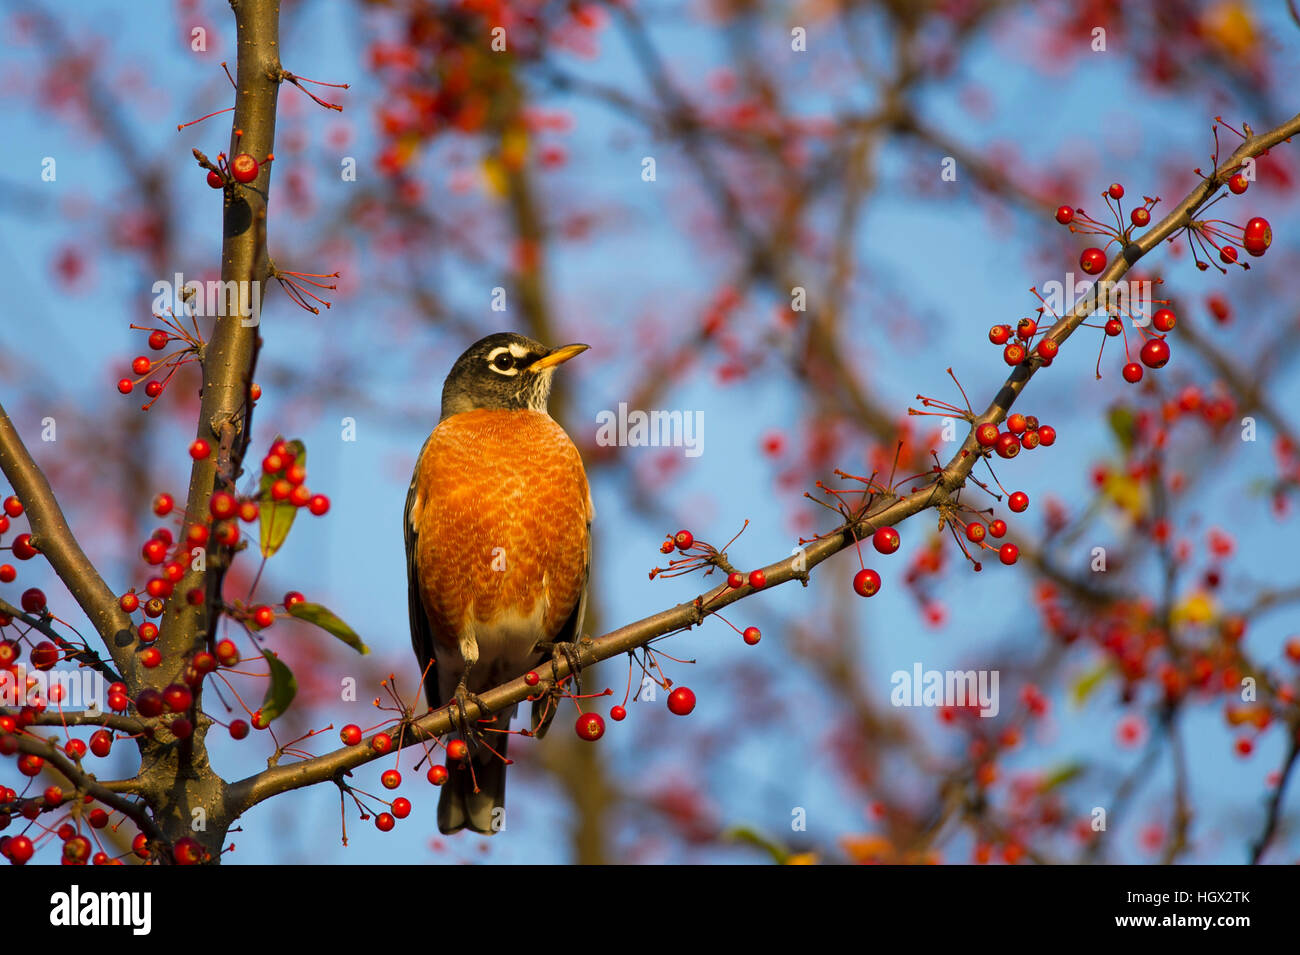 An American Robin perches on a branch full of red berries as the early morning sun shines on. - Stock Image